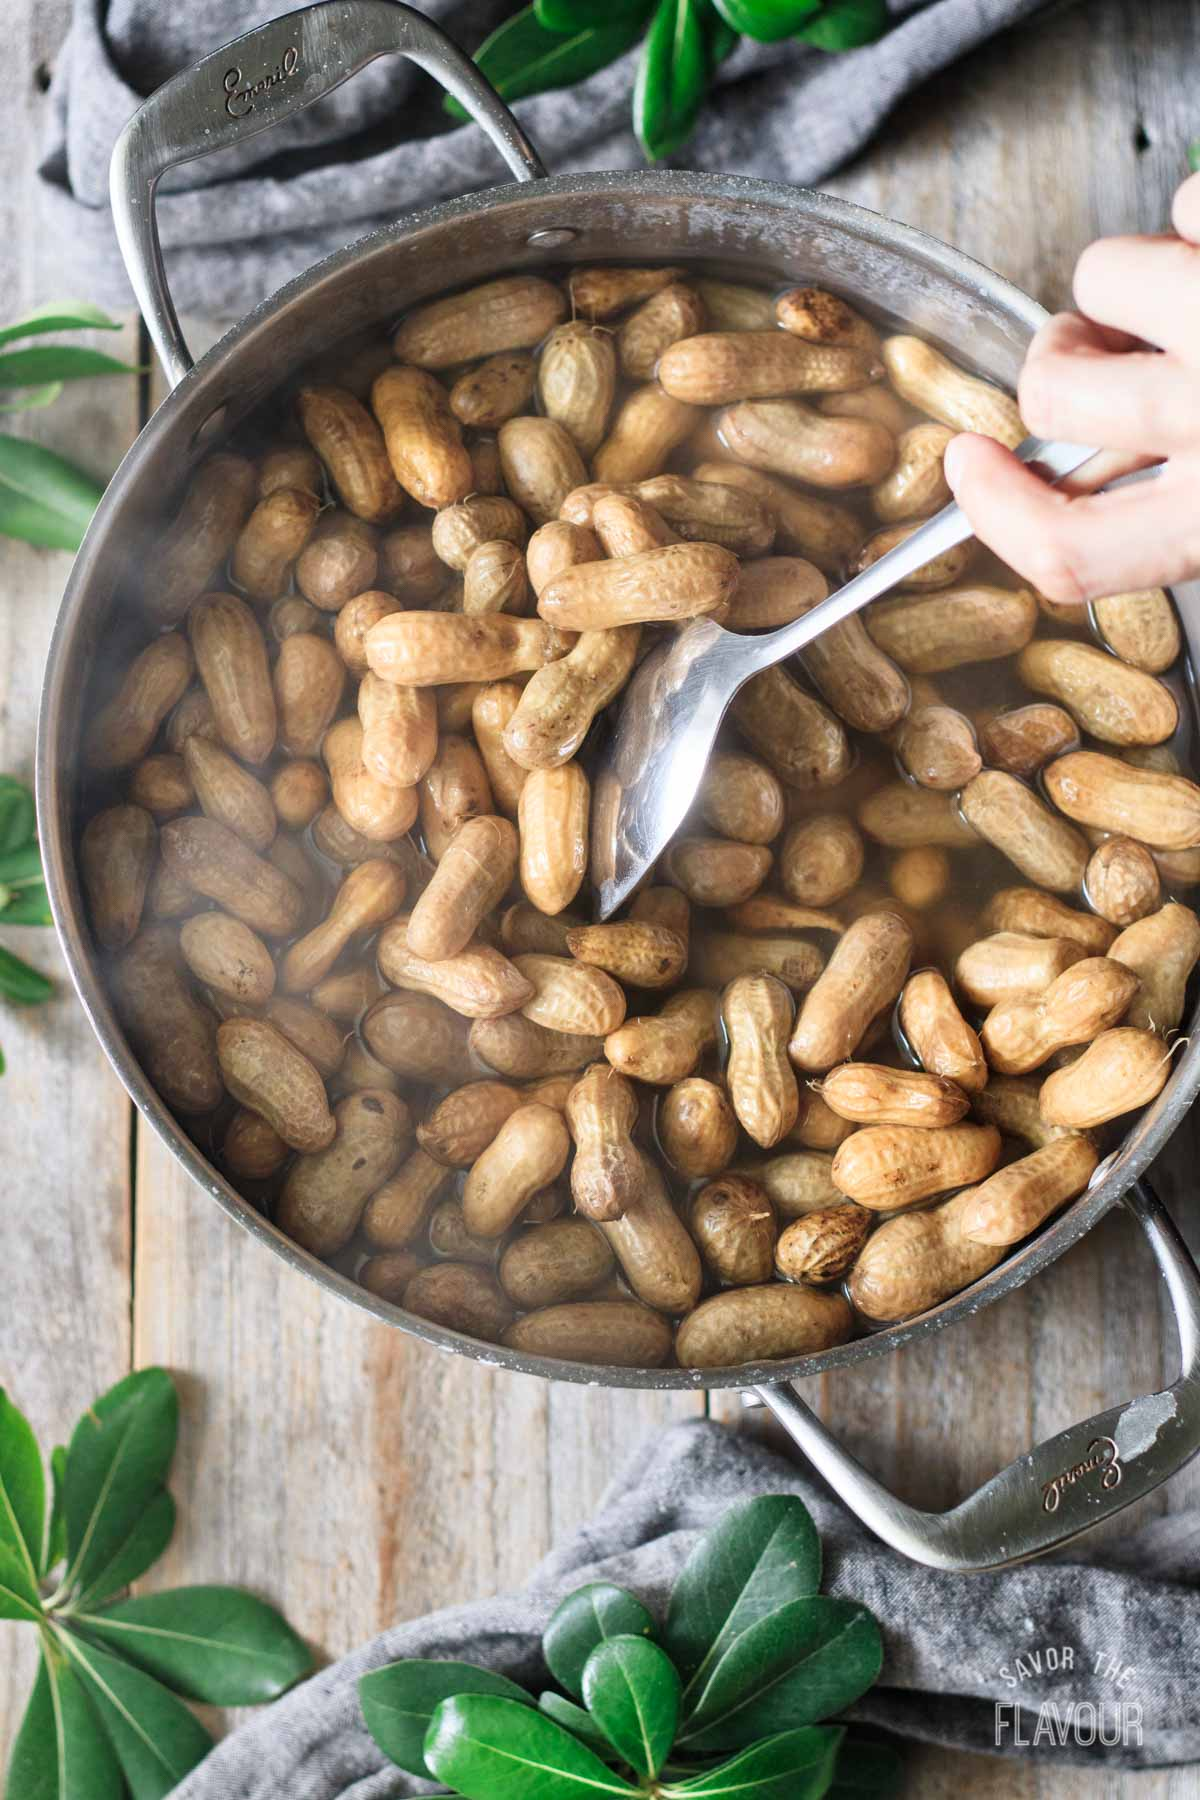 stirring a pot of boiled peanuts